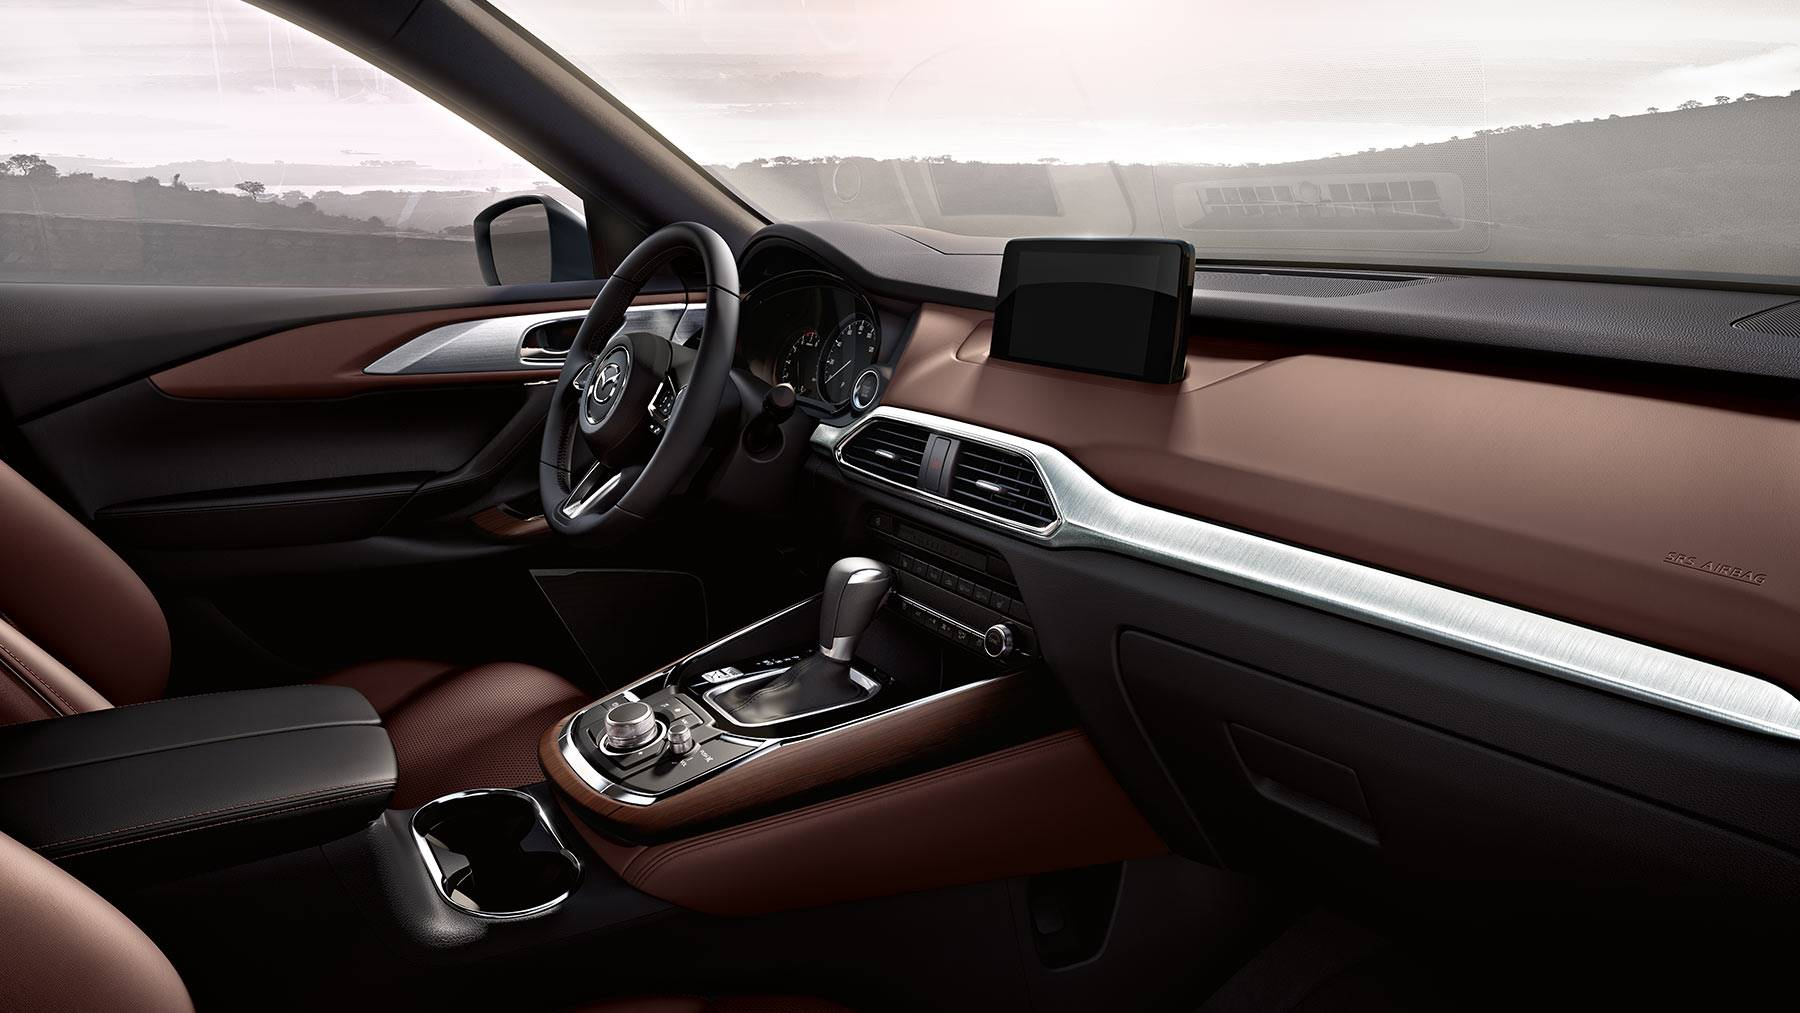 2019 Mazda CX-9 Interior Features